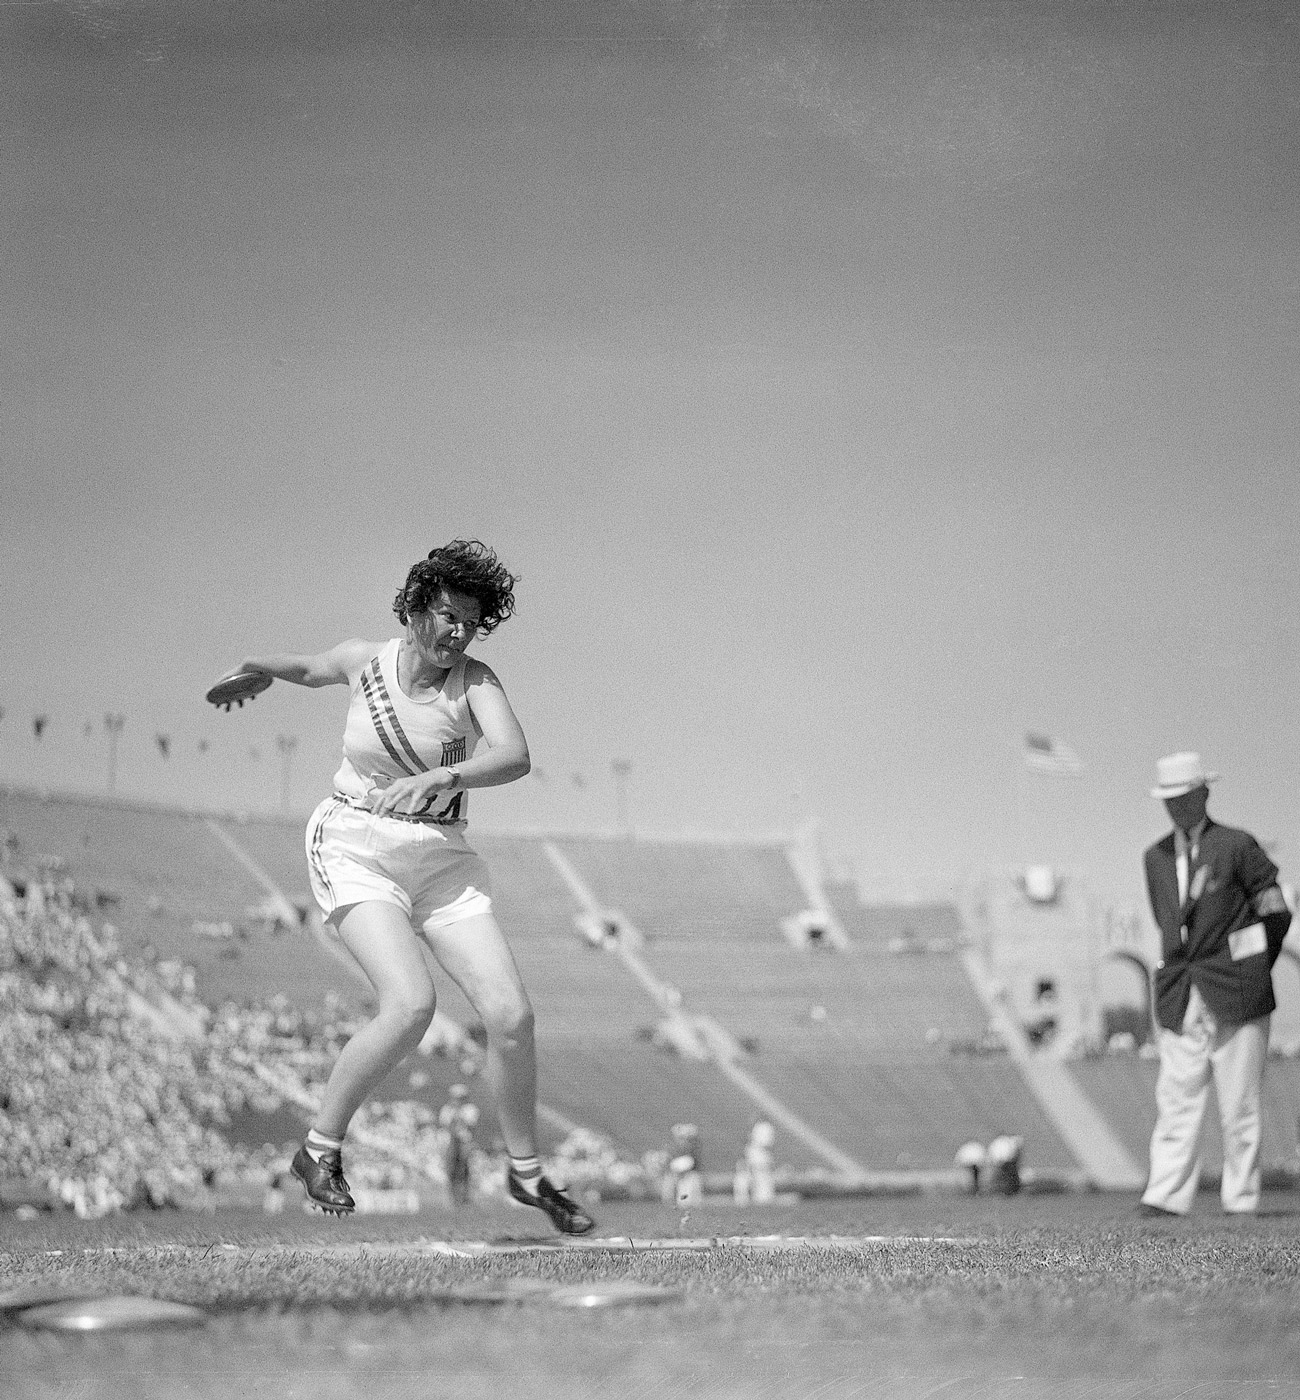 Margaret Jenkins, Track and Field, 1928, 1932 Olympics